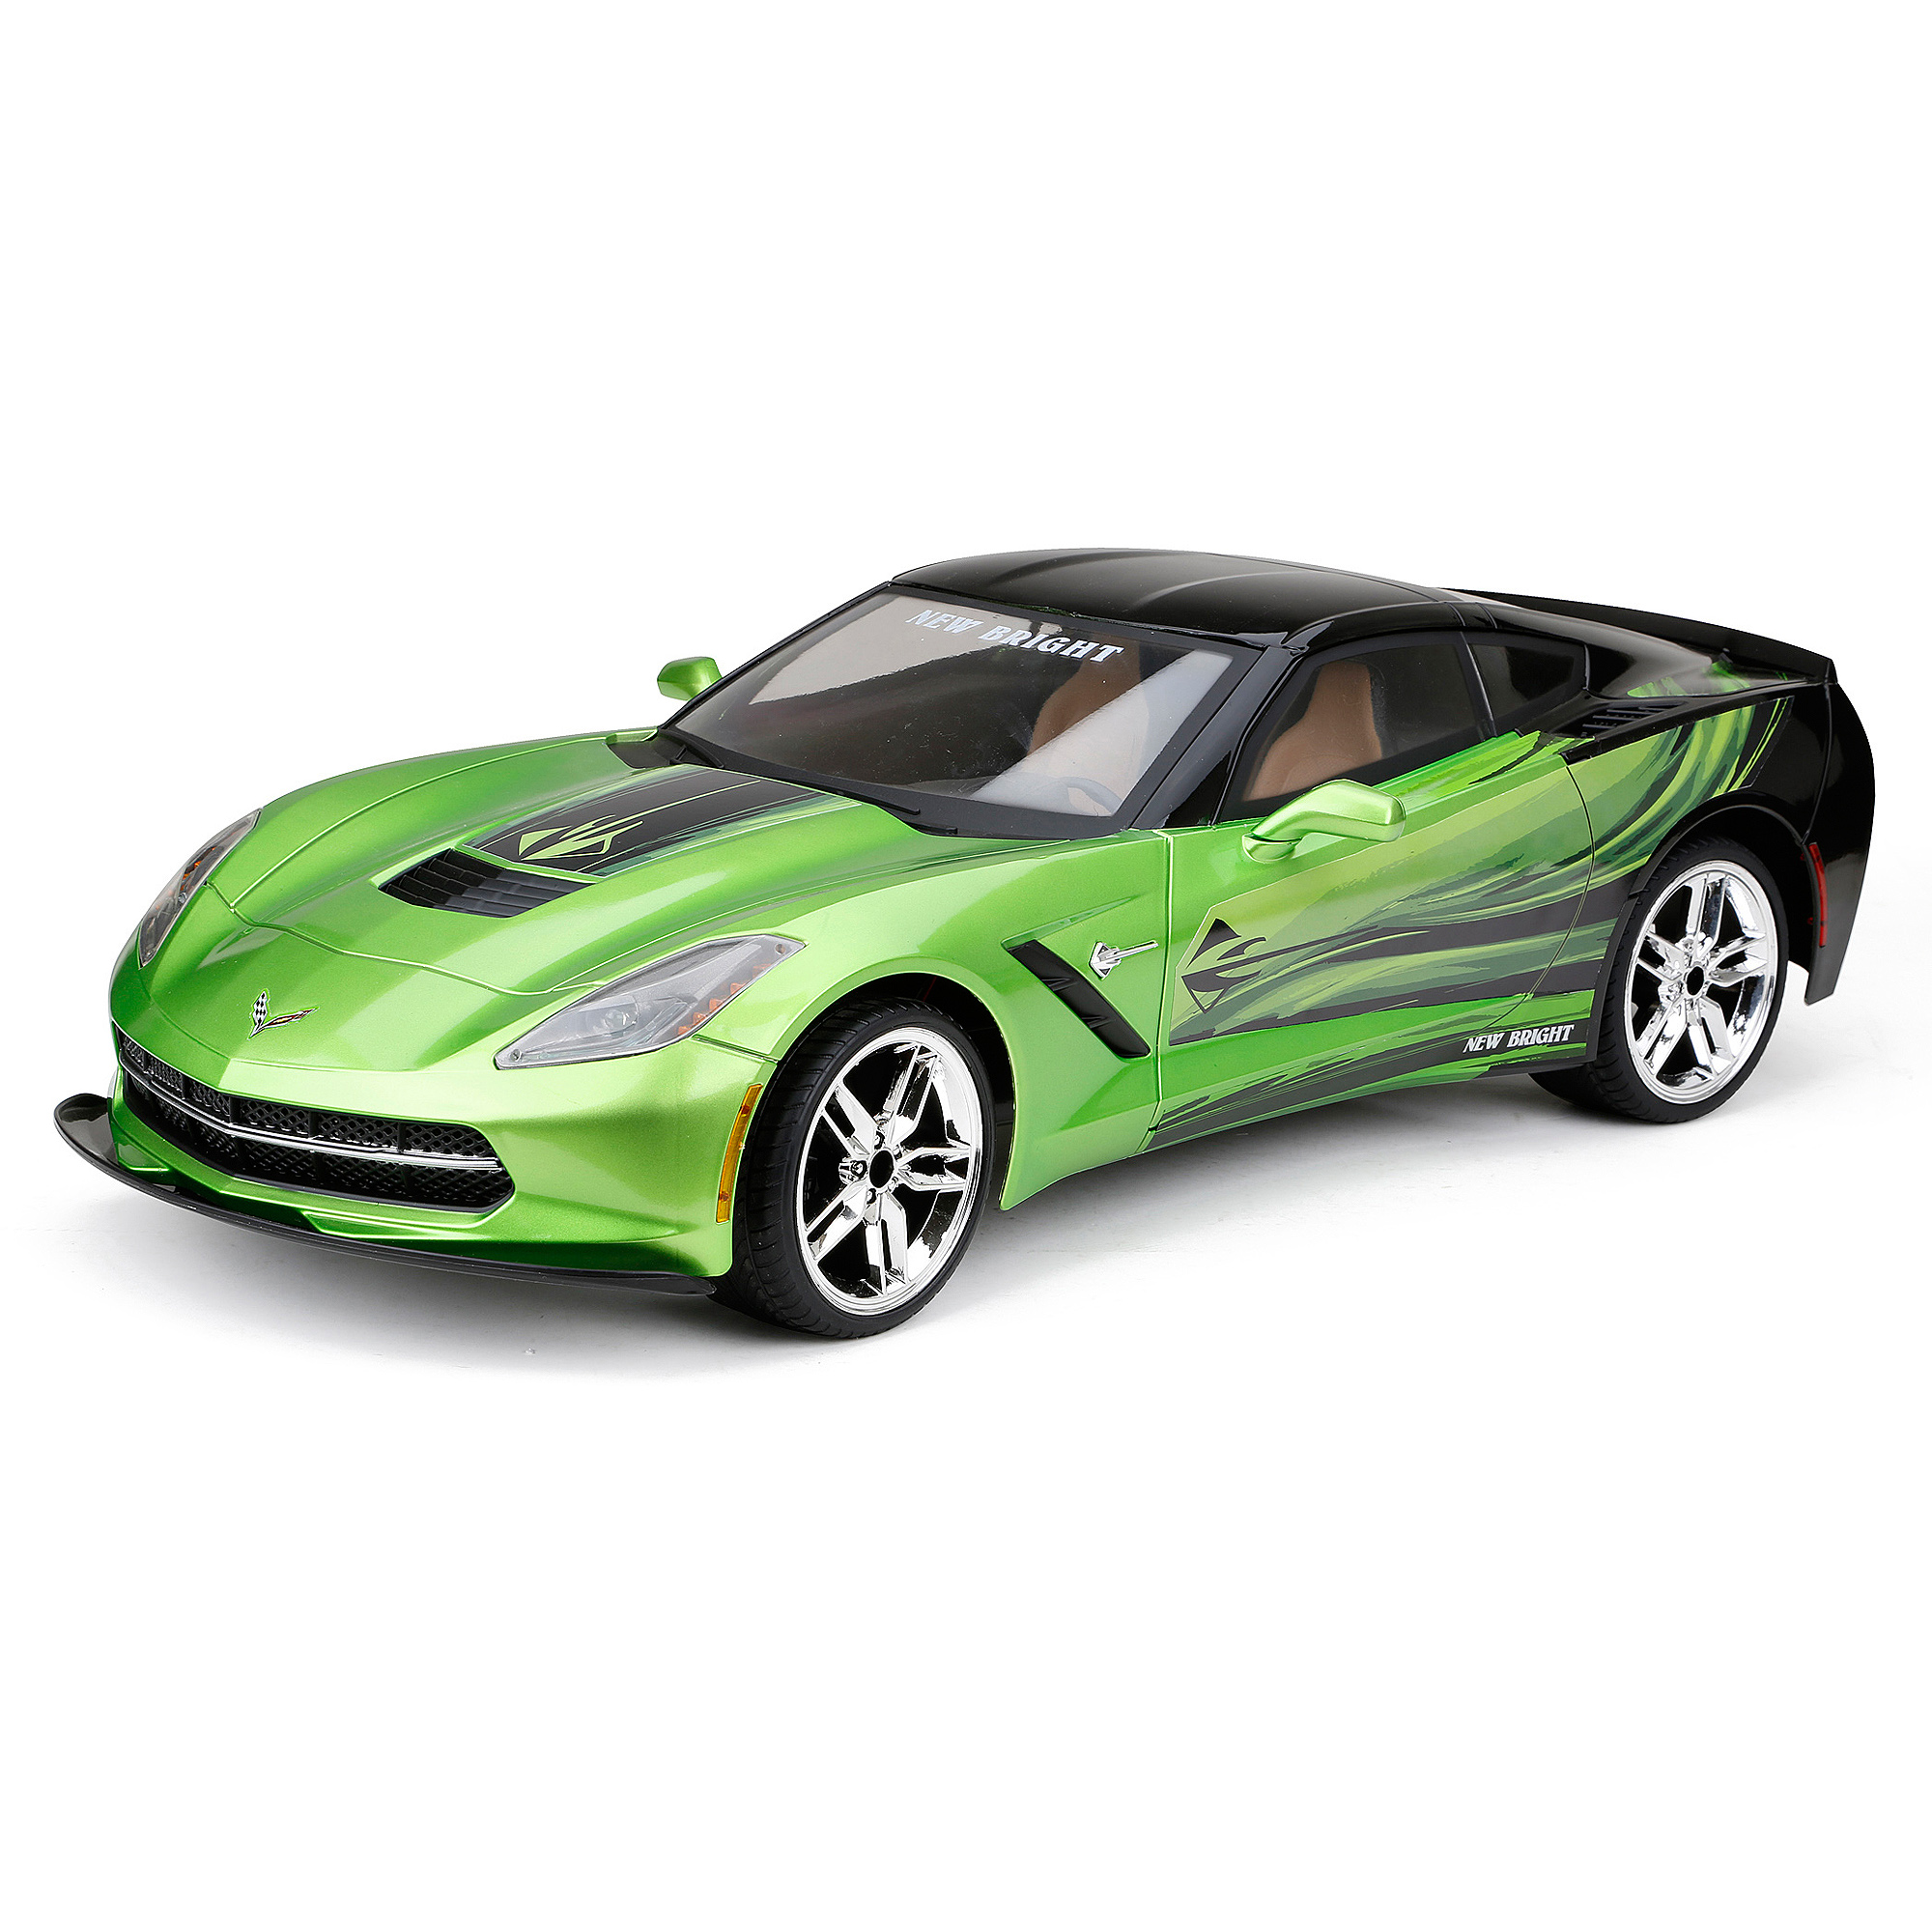 New Bright 1:8 Radio Control Full-Function 9.6V Corvette C7, Green by New Bright